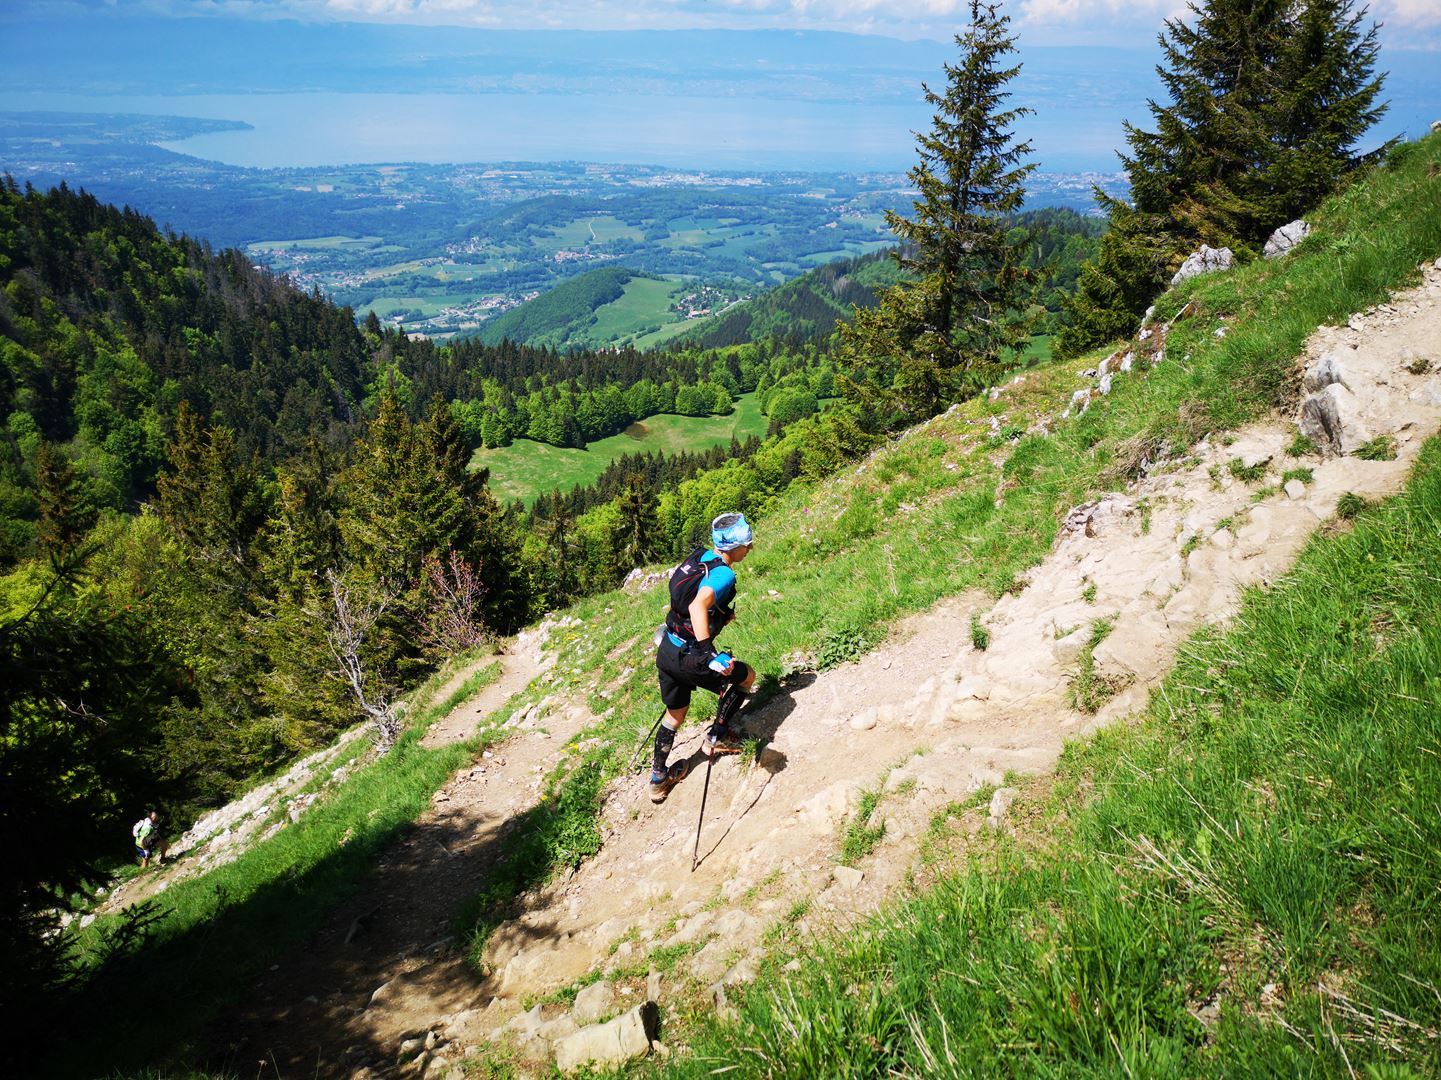 copie 0 IMG 20180520 141435 1 - RESULTATS ET PHOTOS DU TRAIL DE LA VALLEE DU BREVON